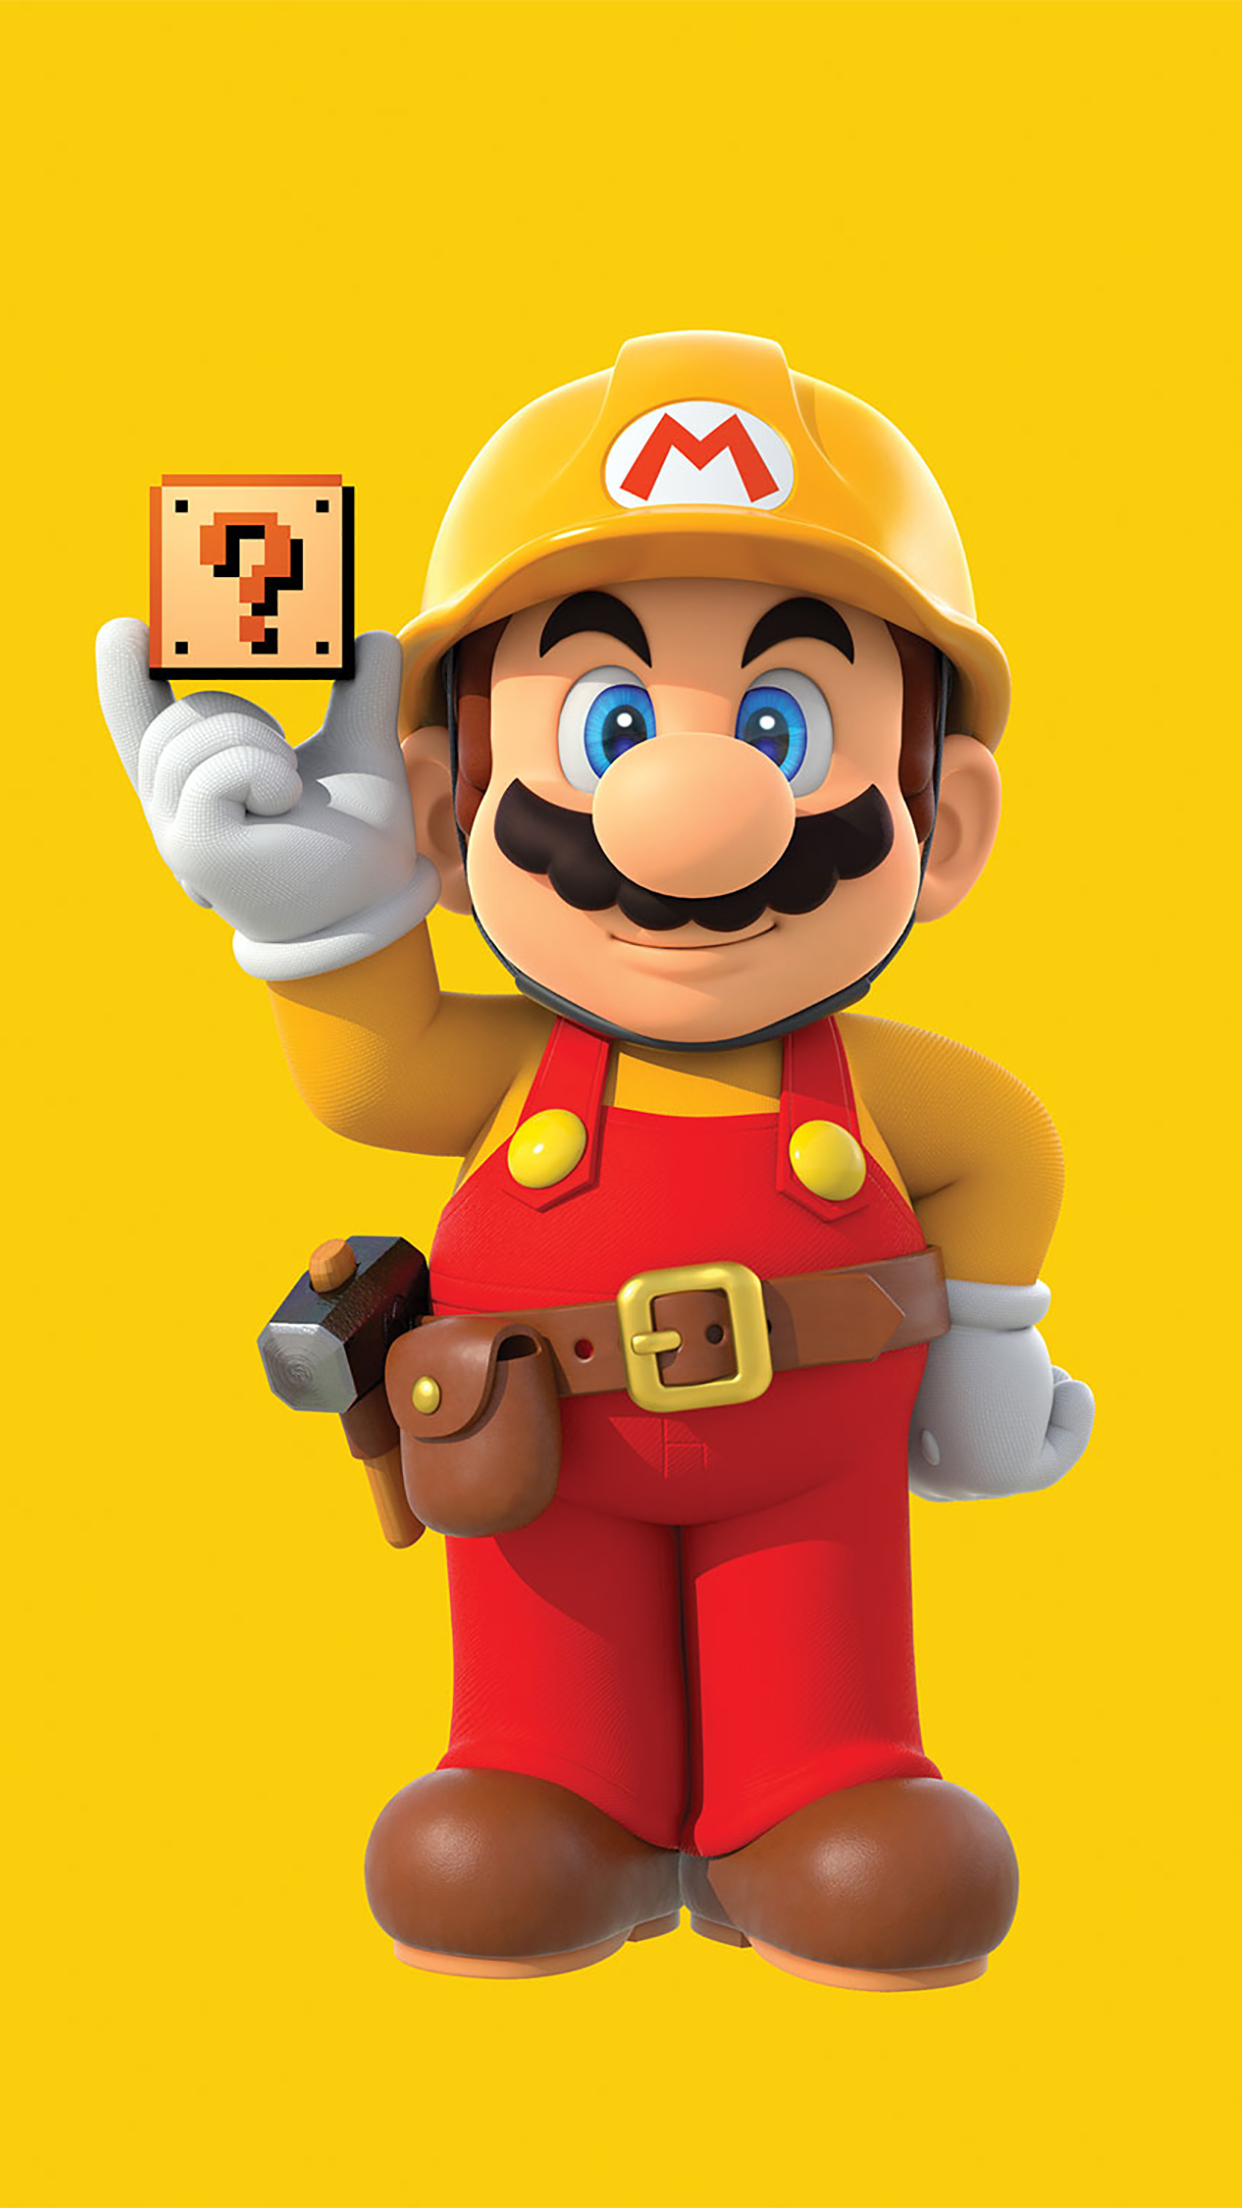 Super Mario Stand Up 3Wallpapers iPhone Parallax Les 3Wallpapers iPhone du jour (18/12/2016)